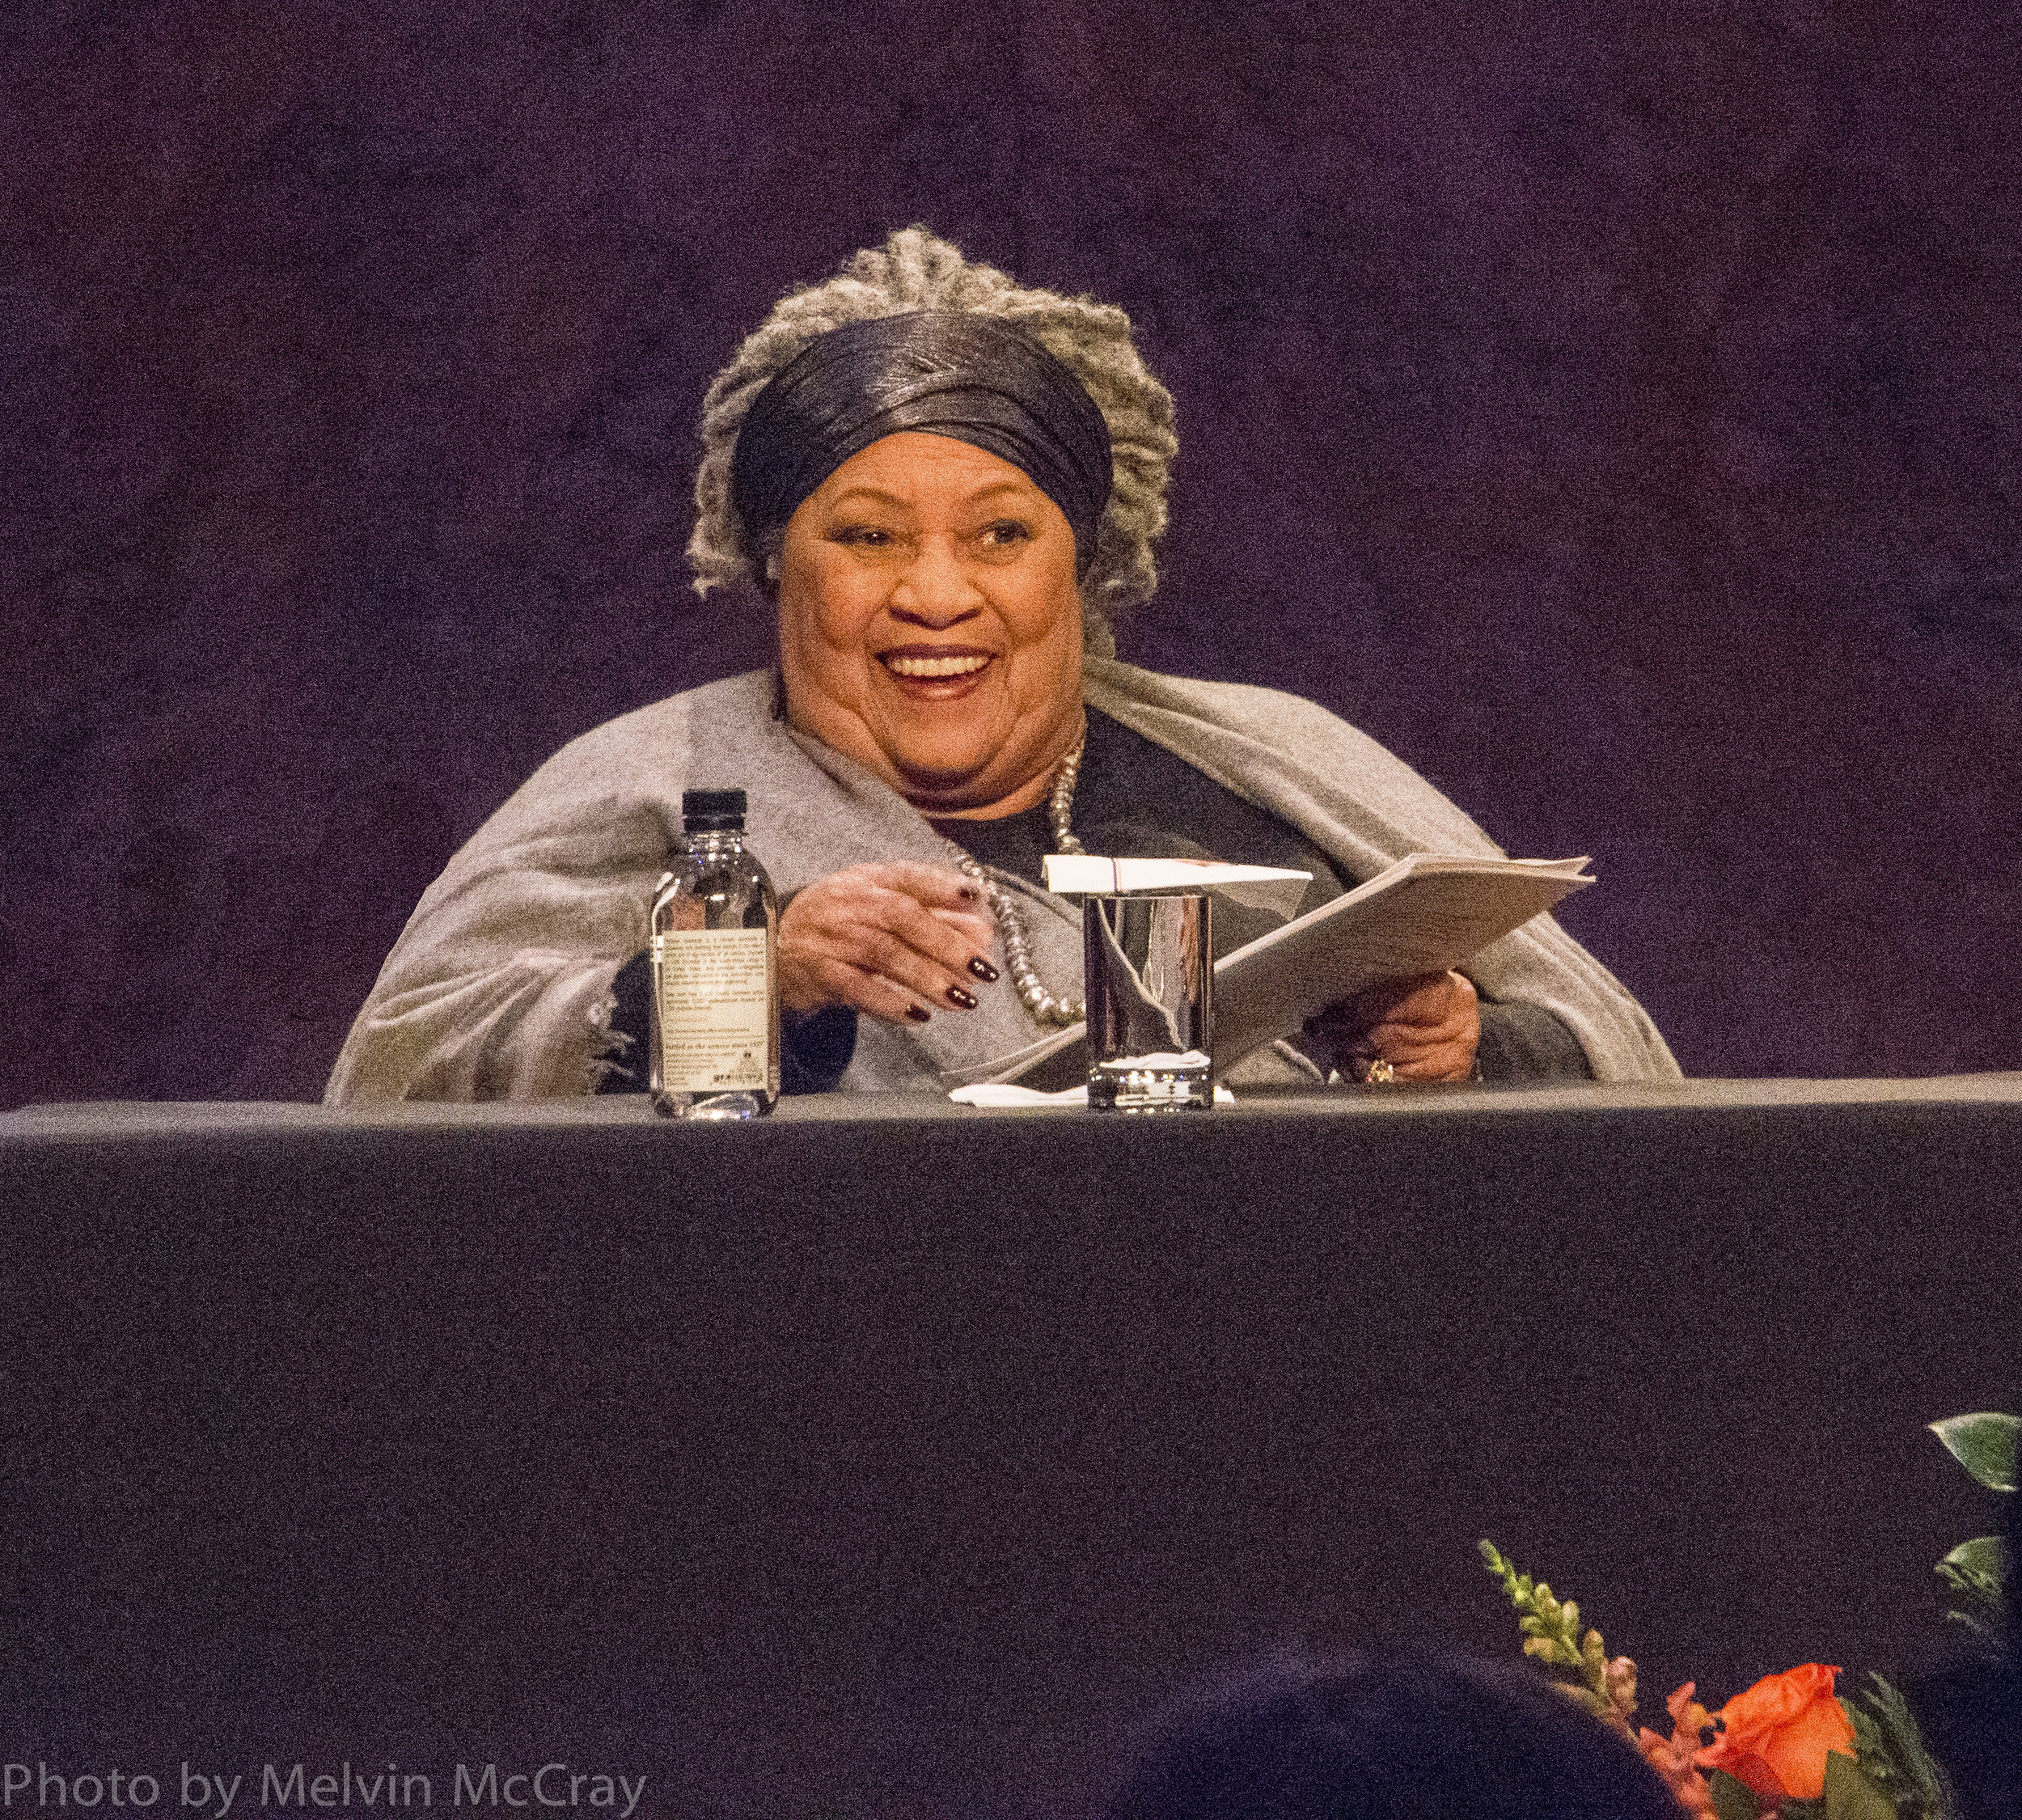 Toni Morrison Keynote 2 photo by Melvin McCray.jpg